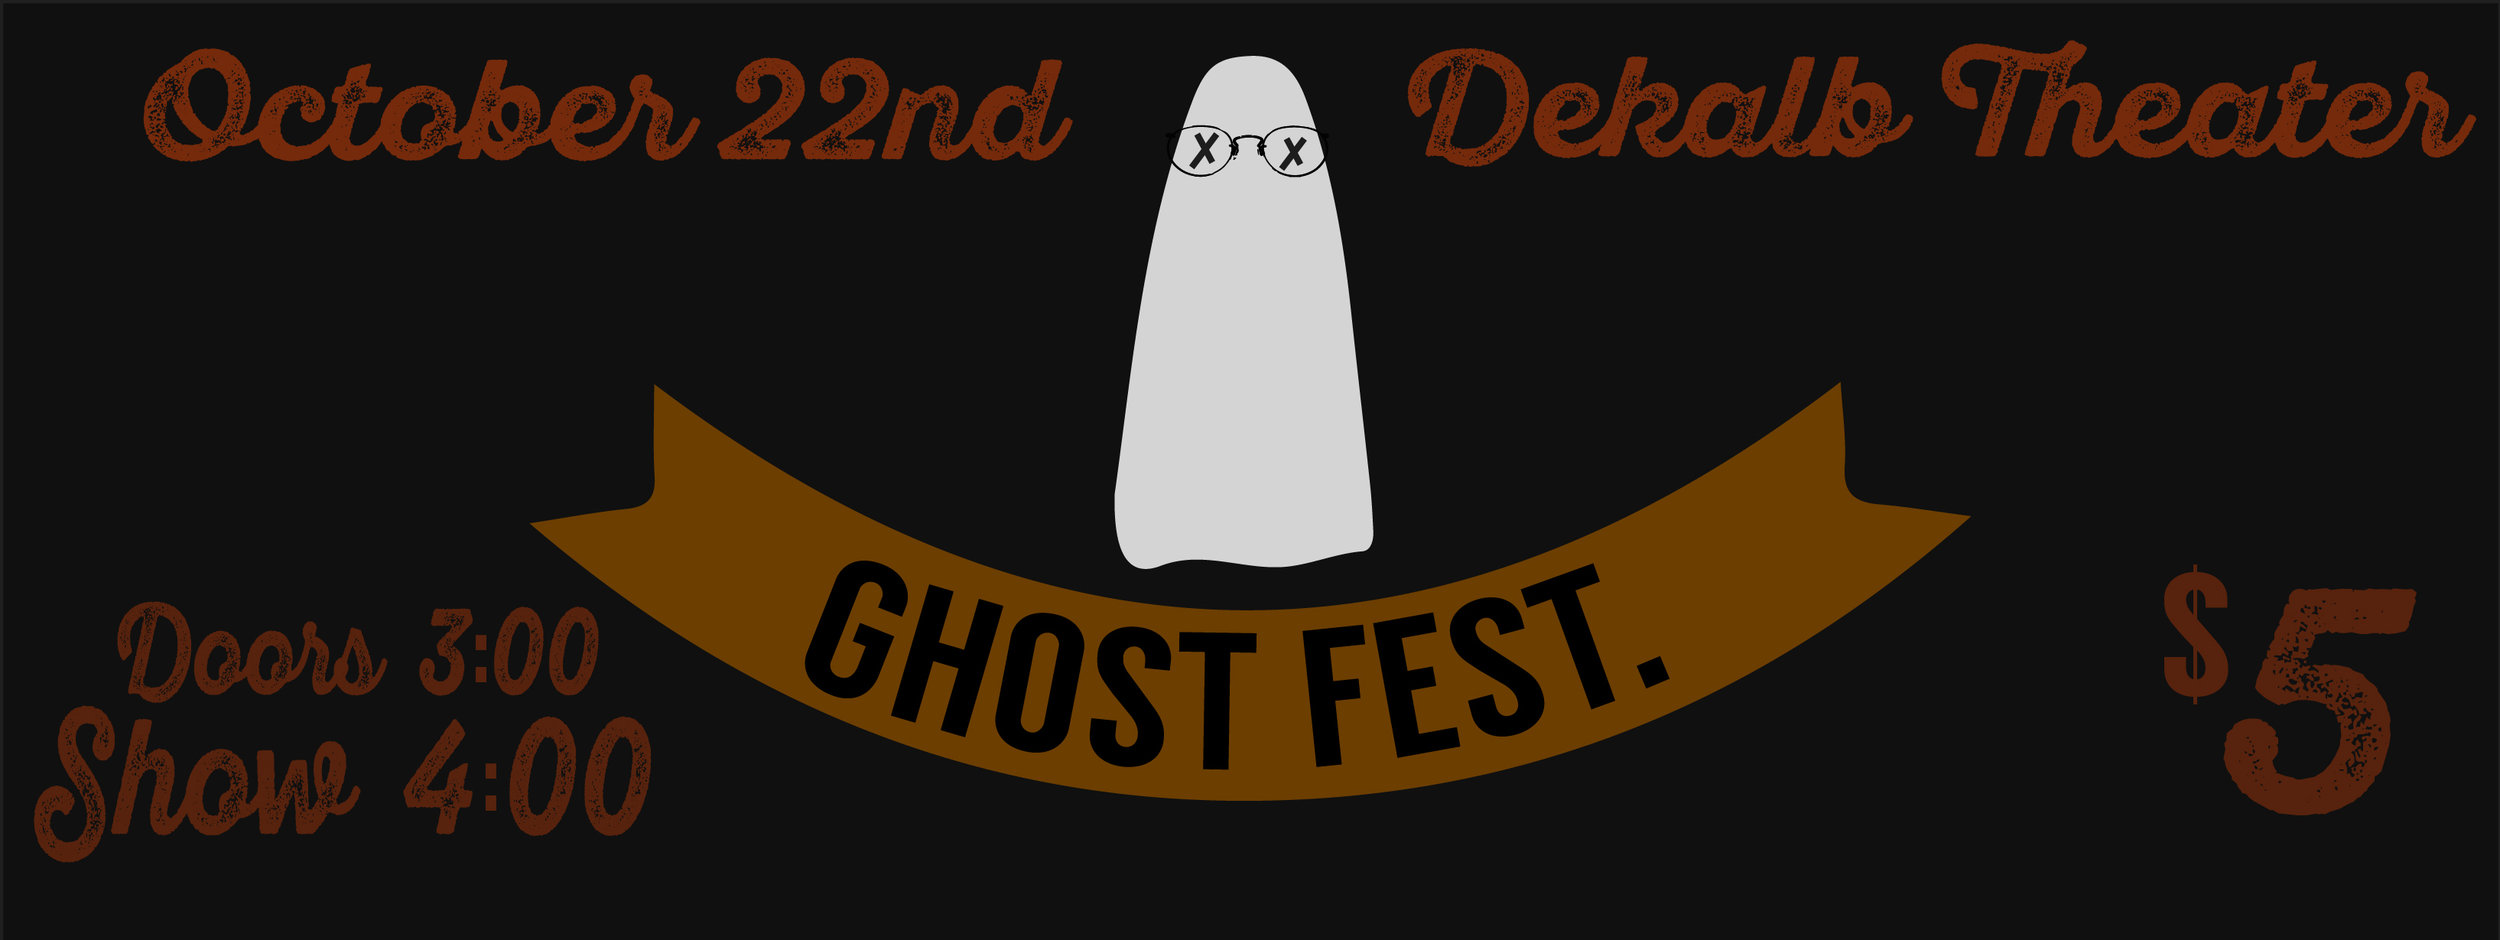 GhostFestBanner.jpg